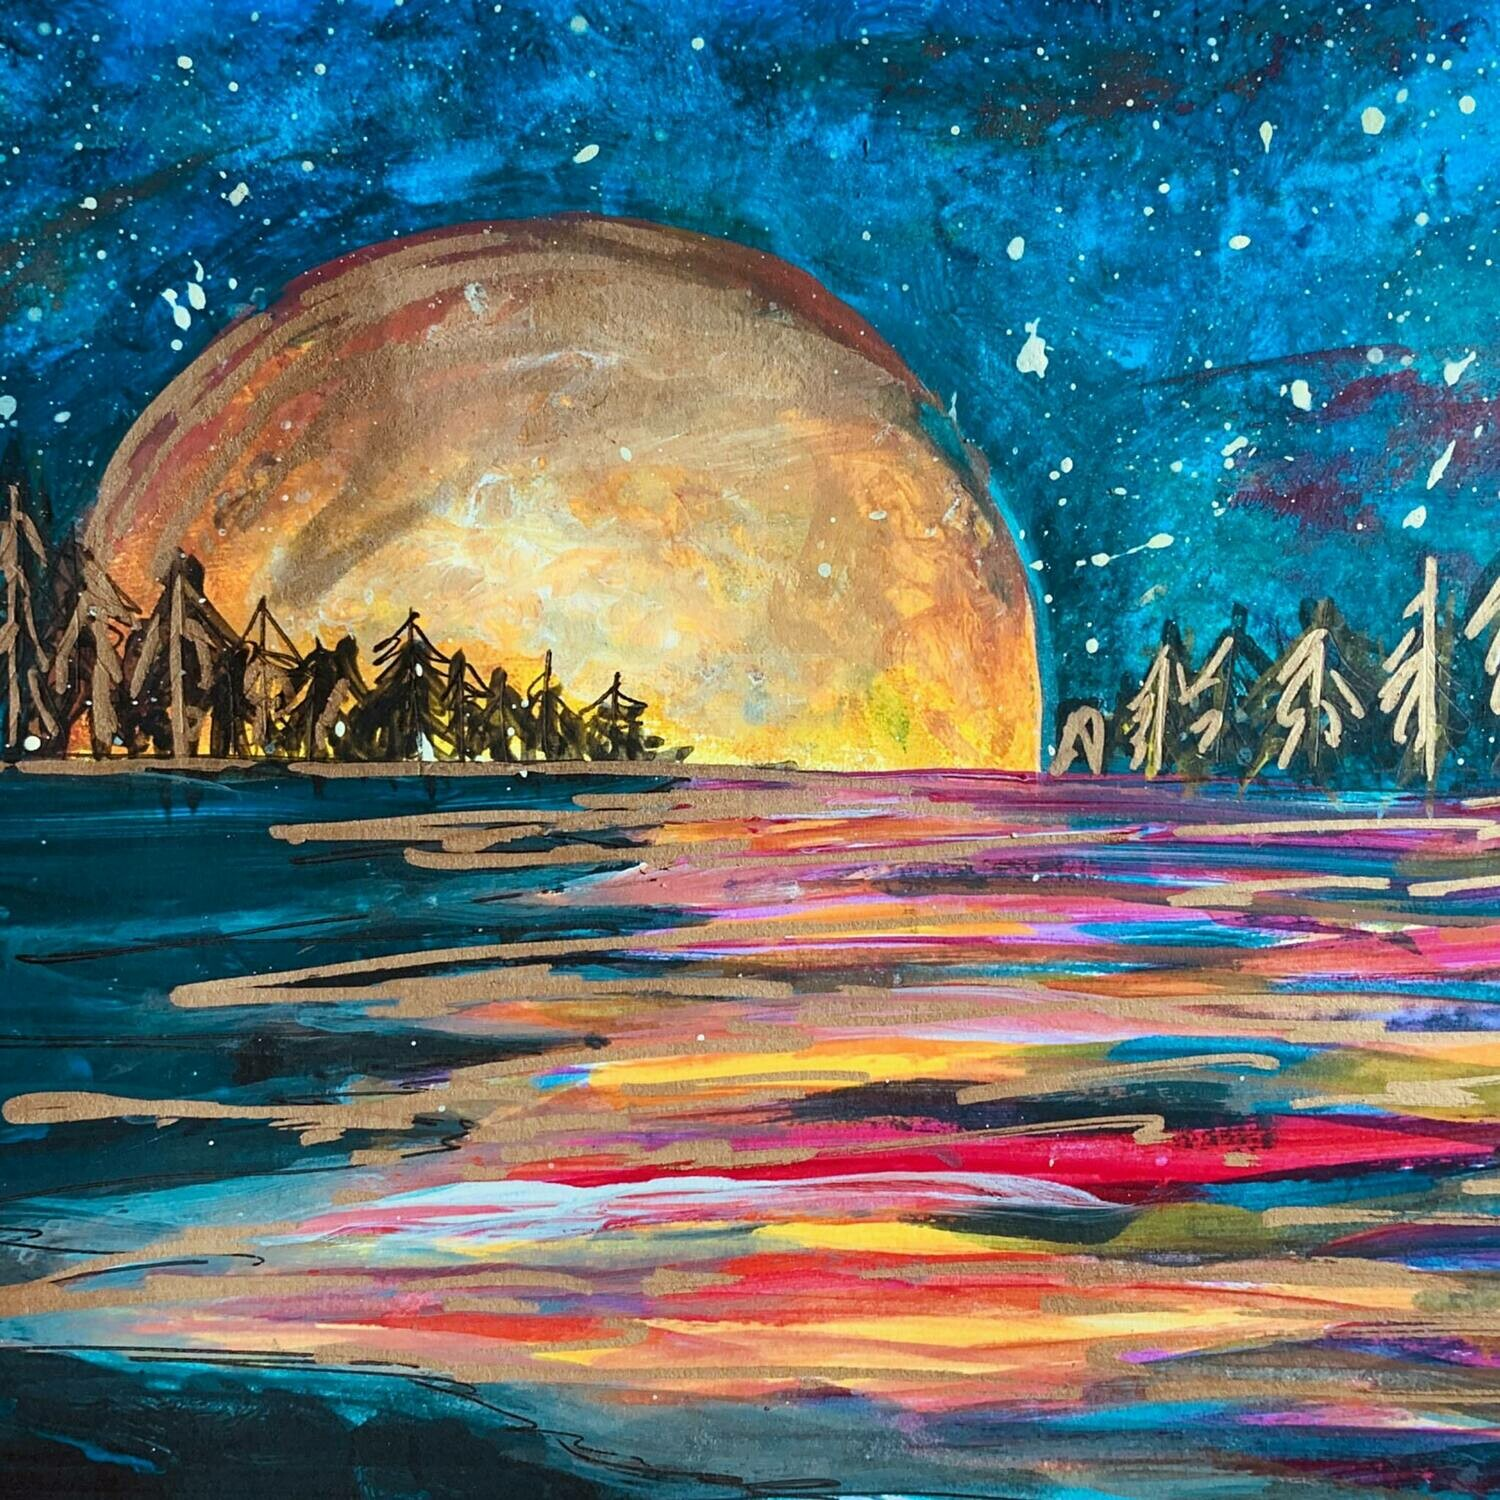 Paint pARTy at MOMO, Wednesday Aug 28th 6-9pm